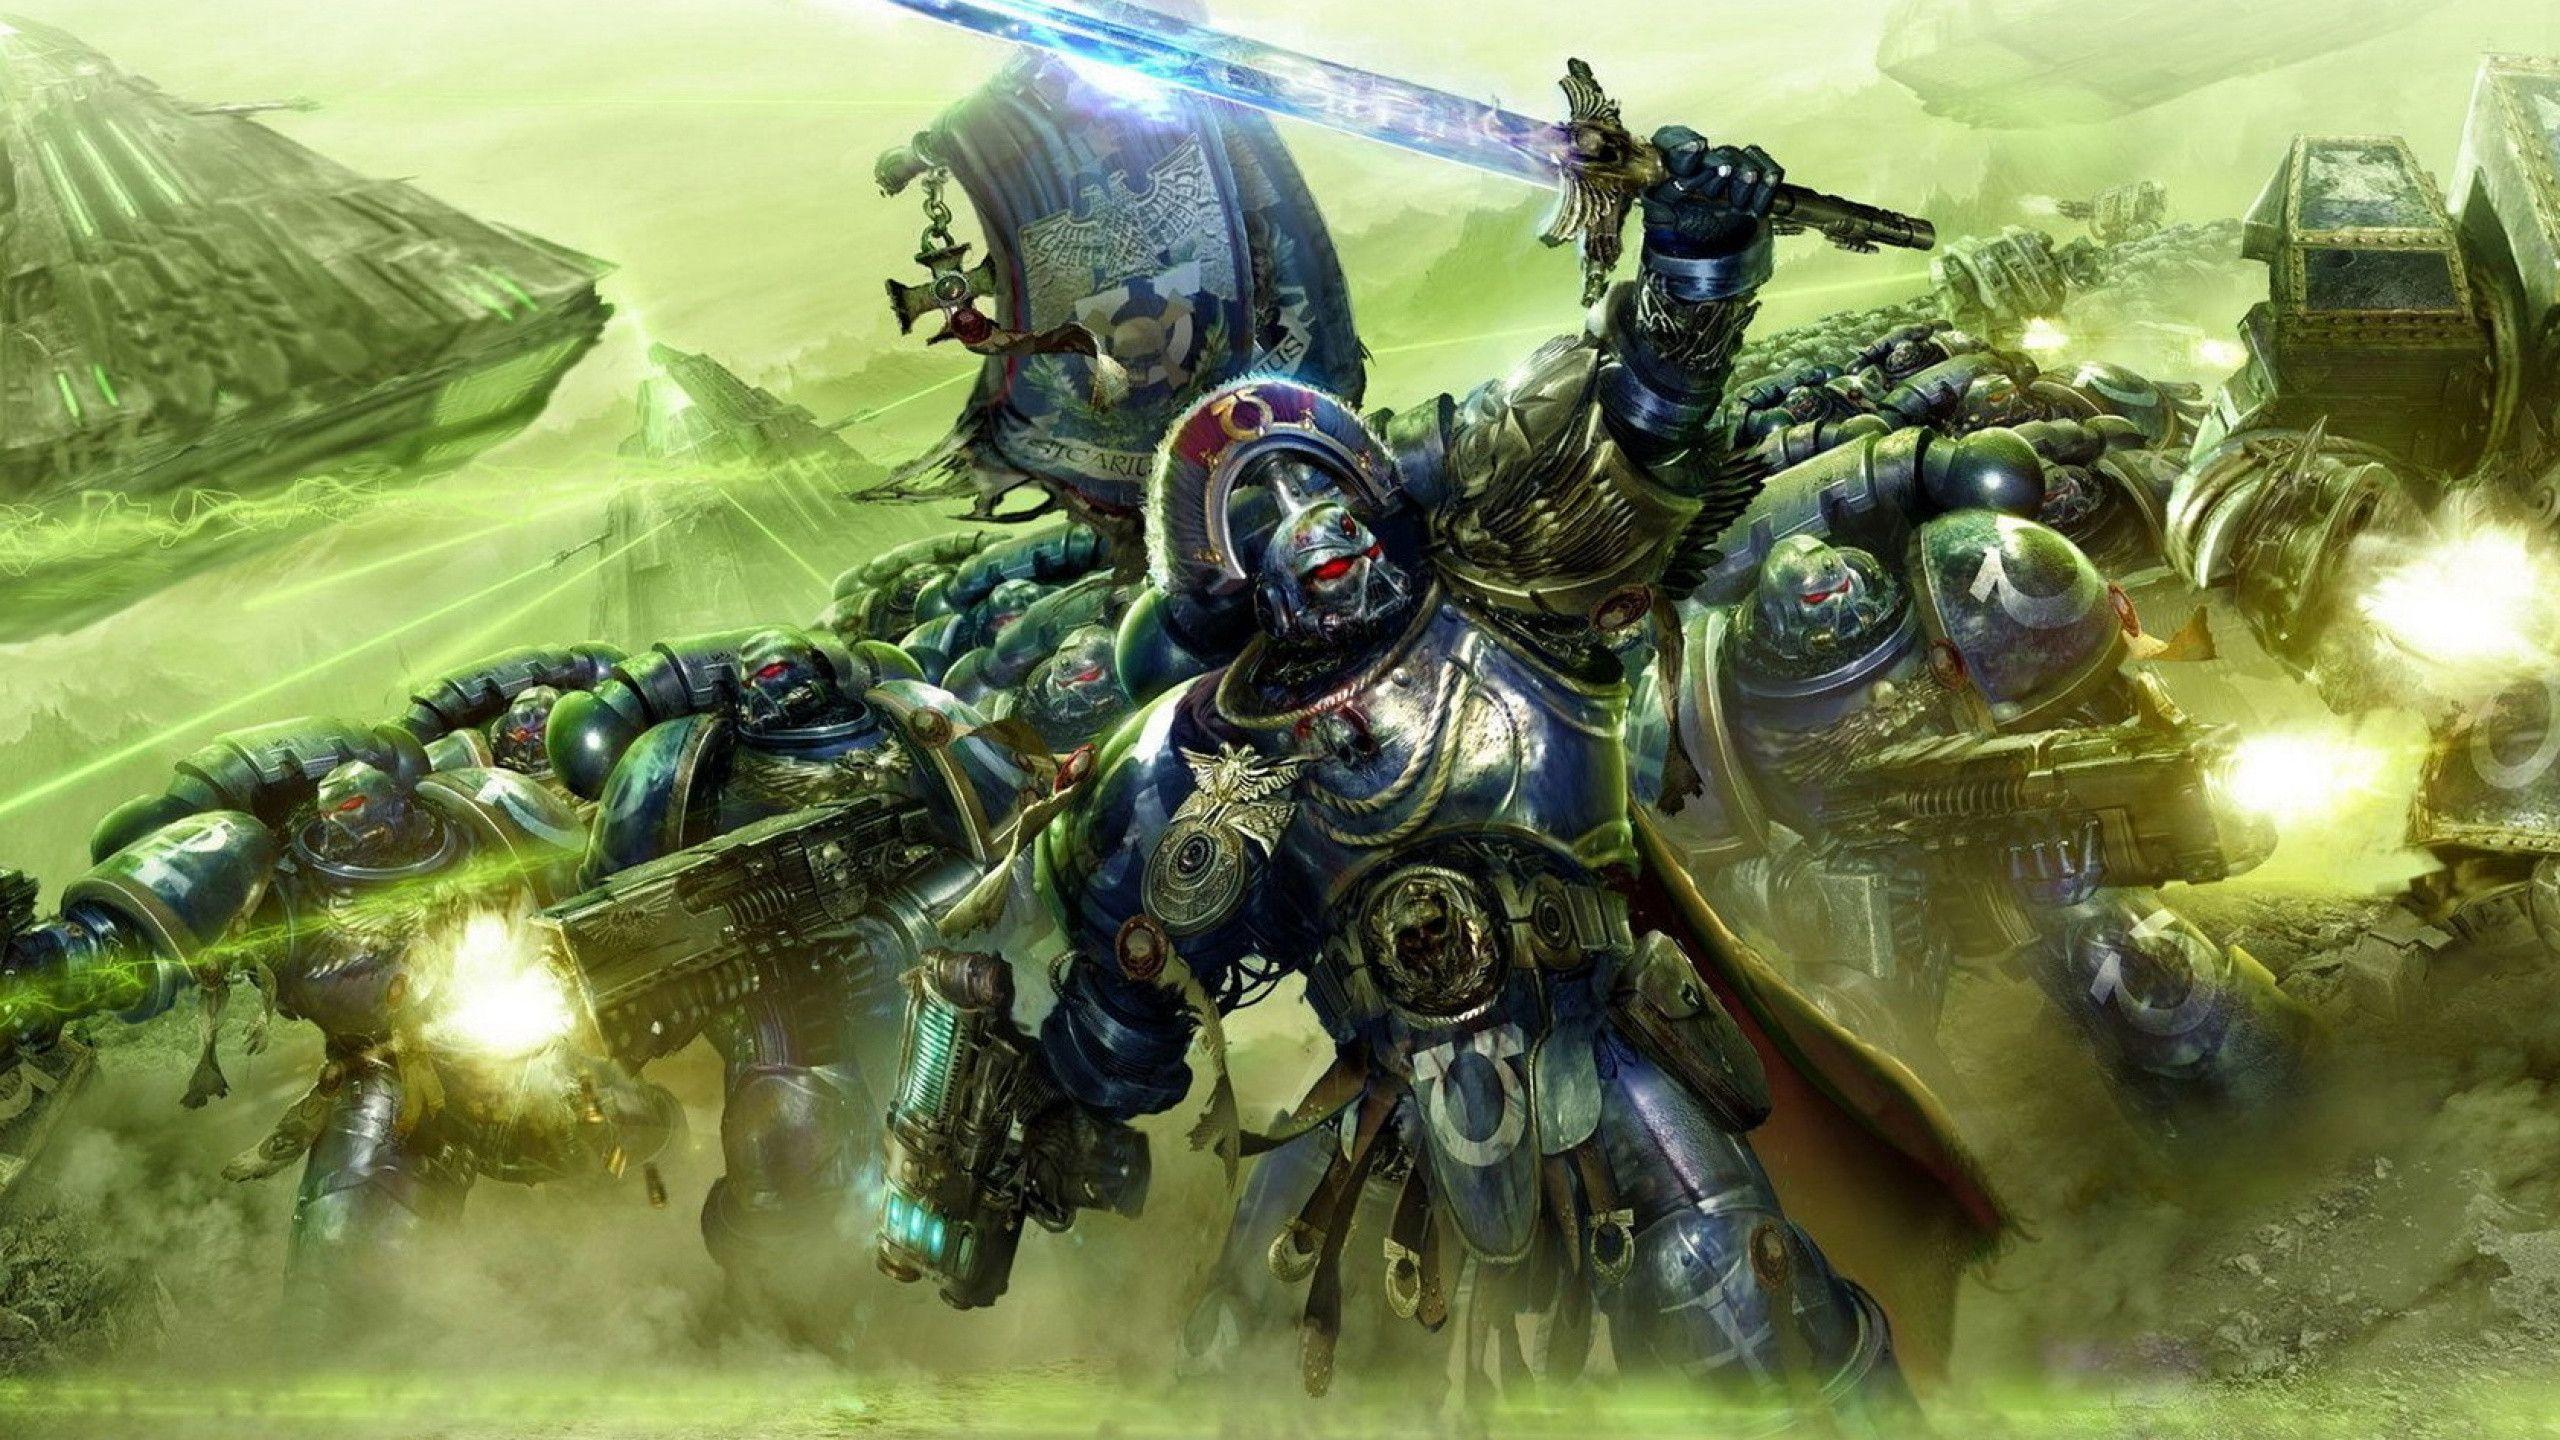 Space Marines Wallpapers 2560x1440